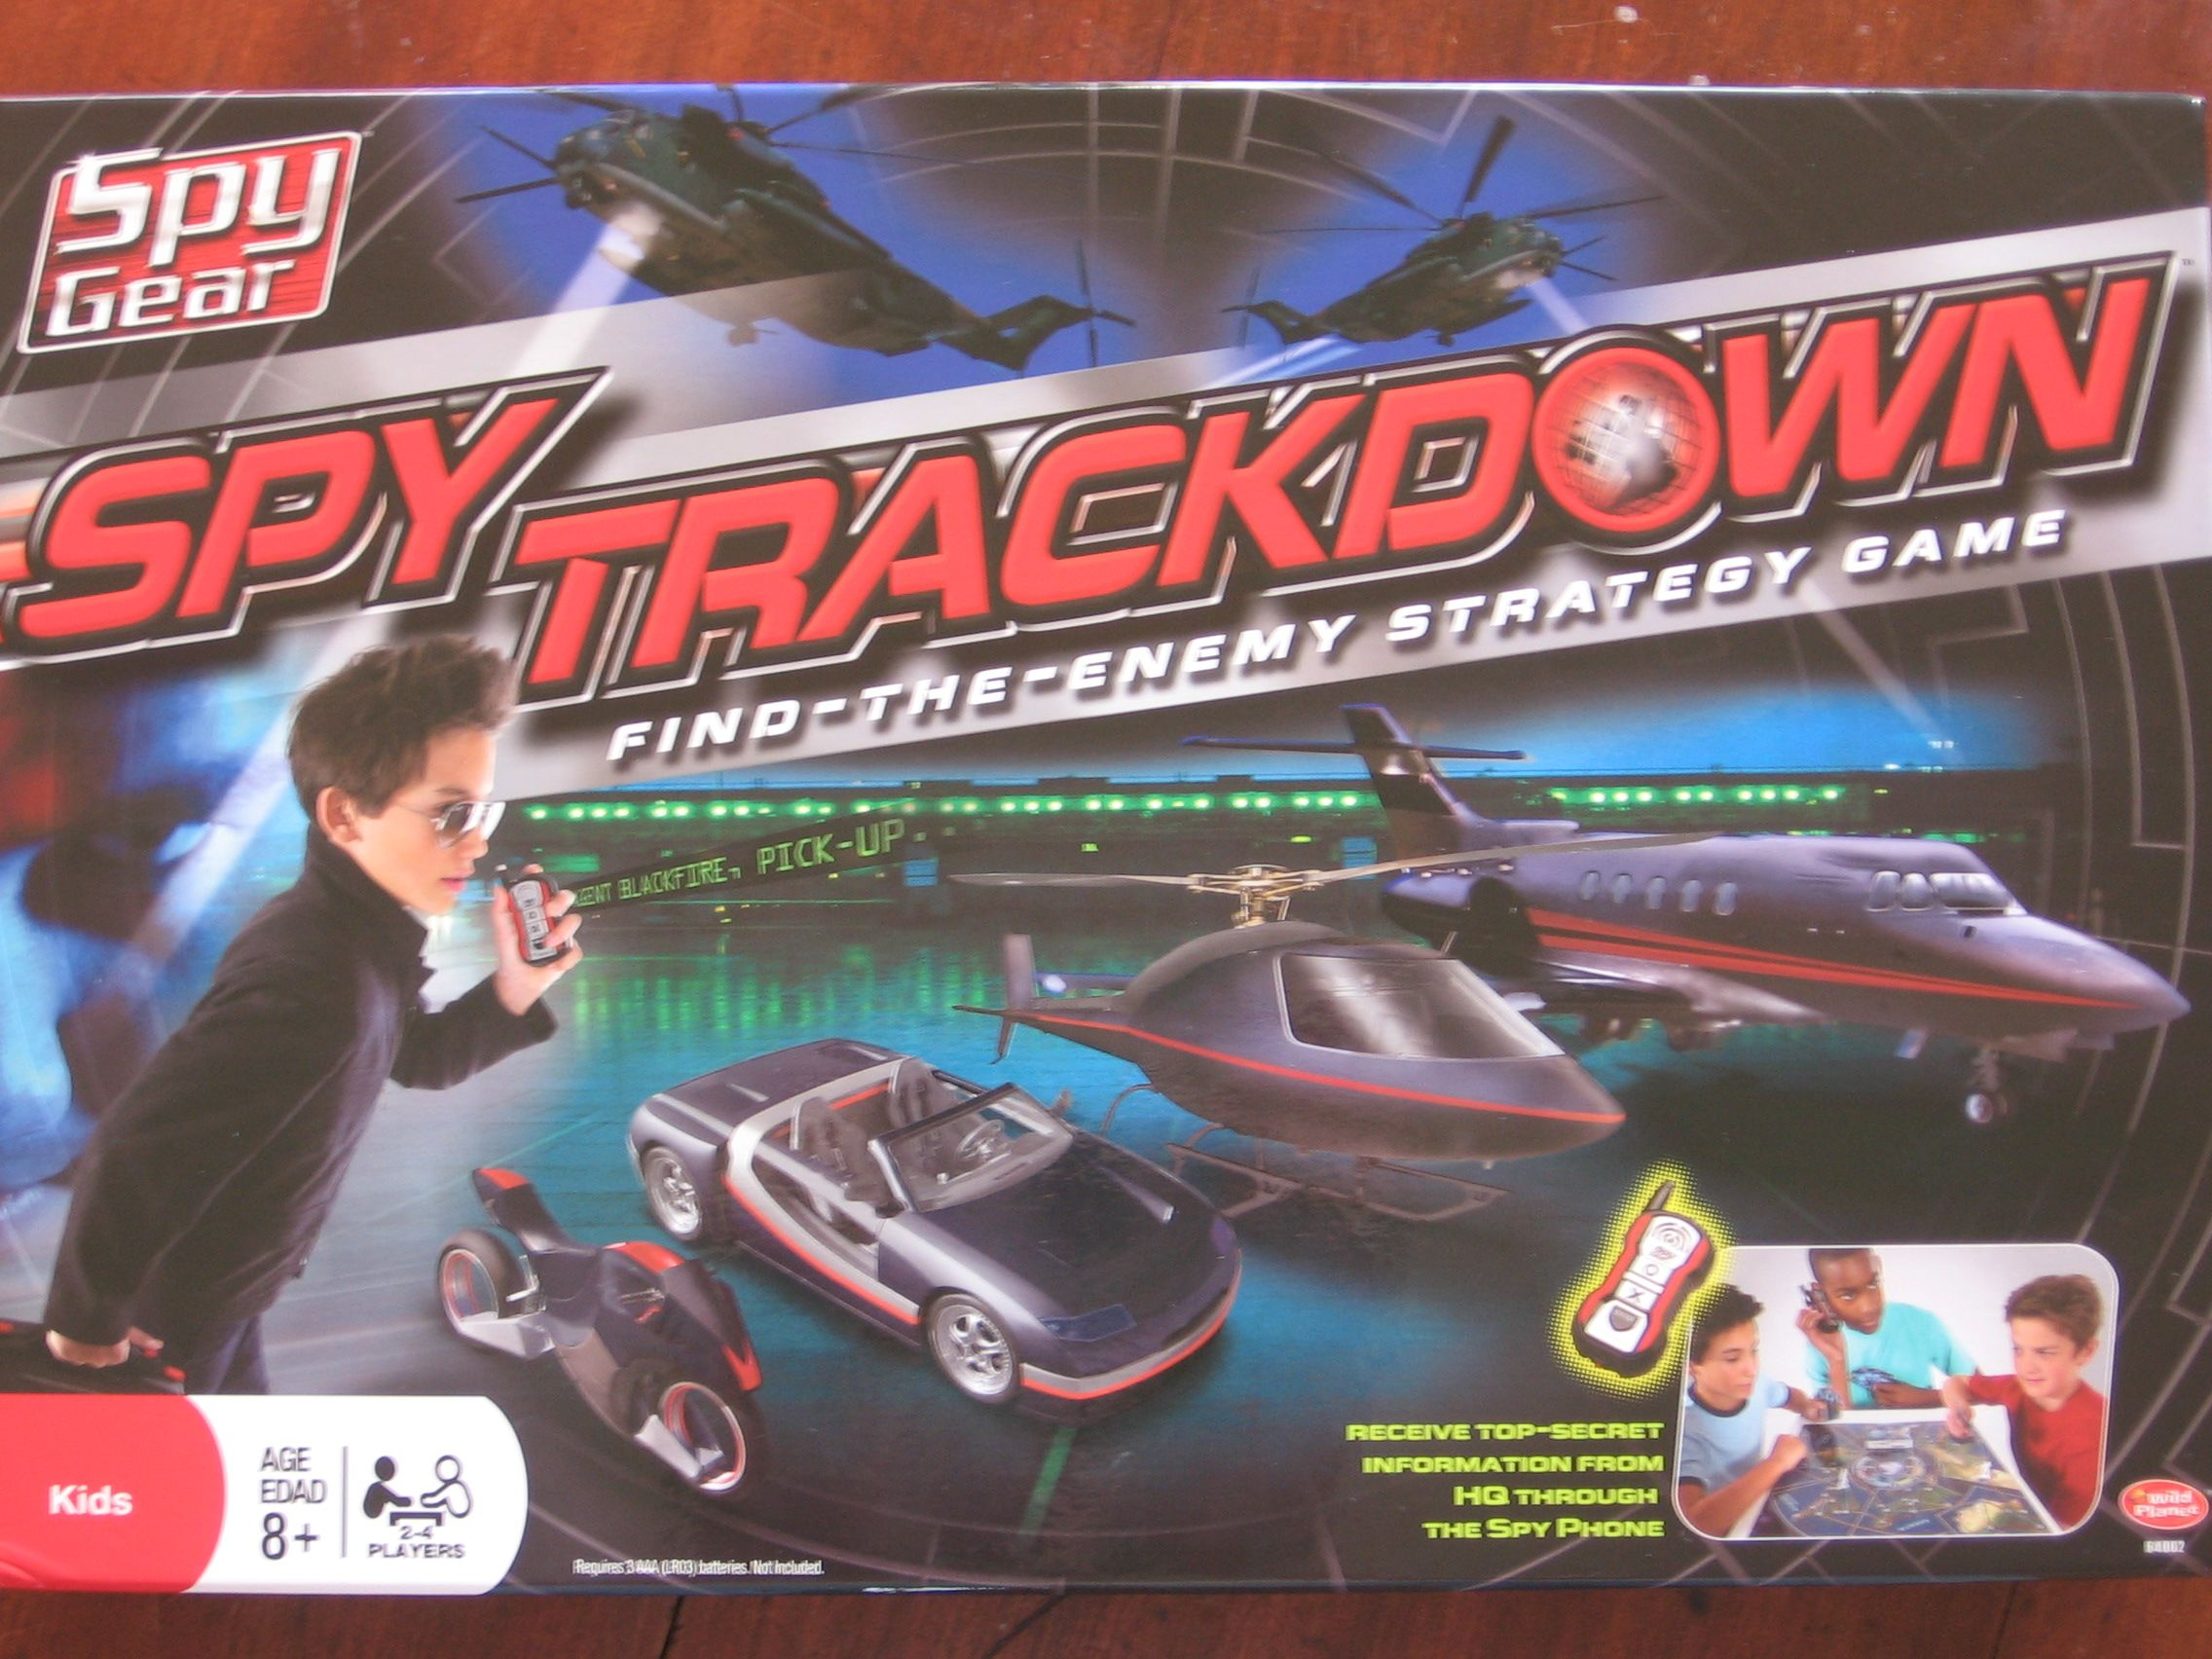 Spy Gear: Spy Trackdown